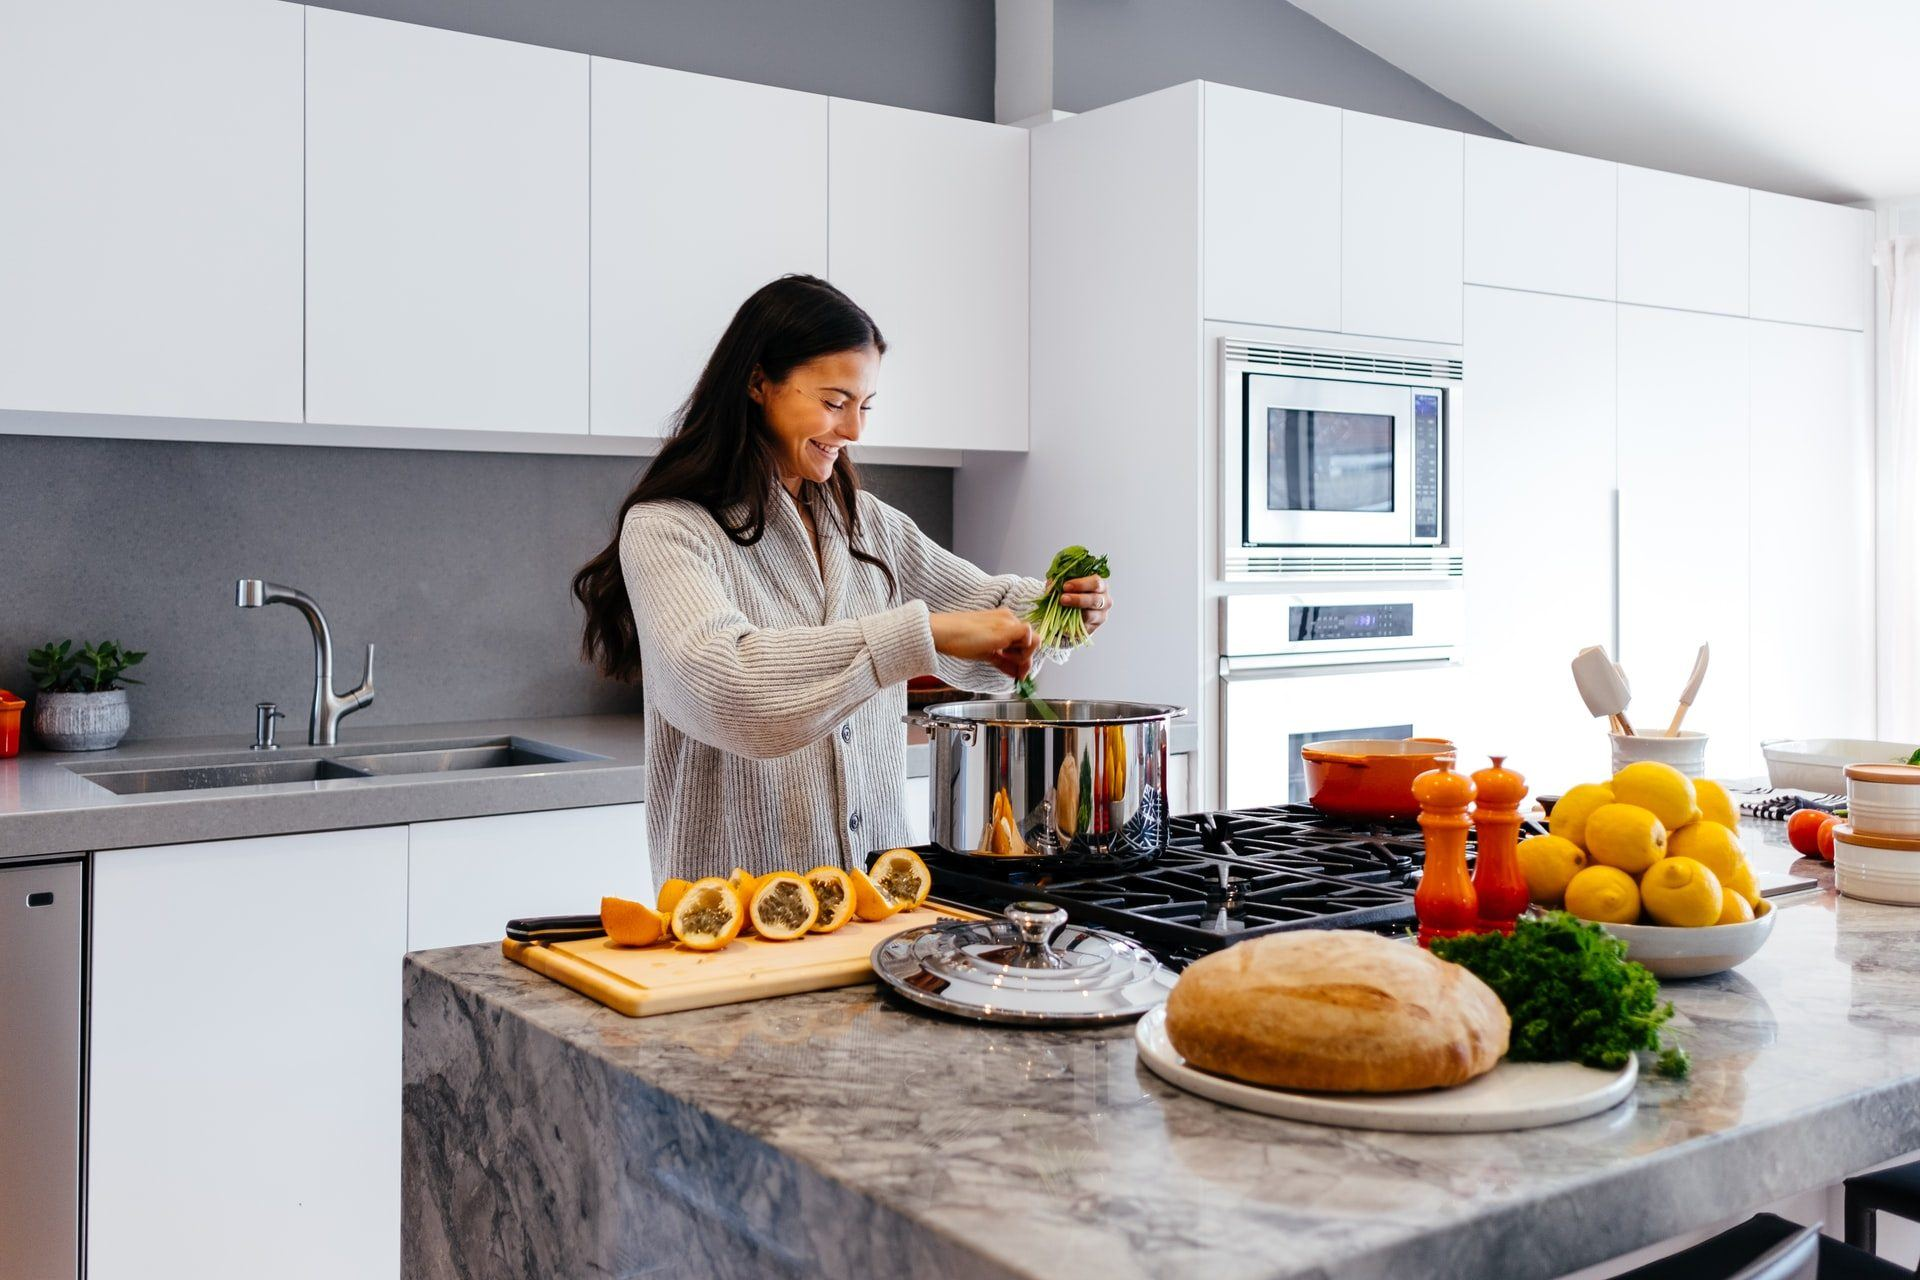 How To Plan Meals For Easy, Healthy Cooking